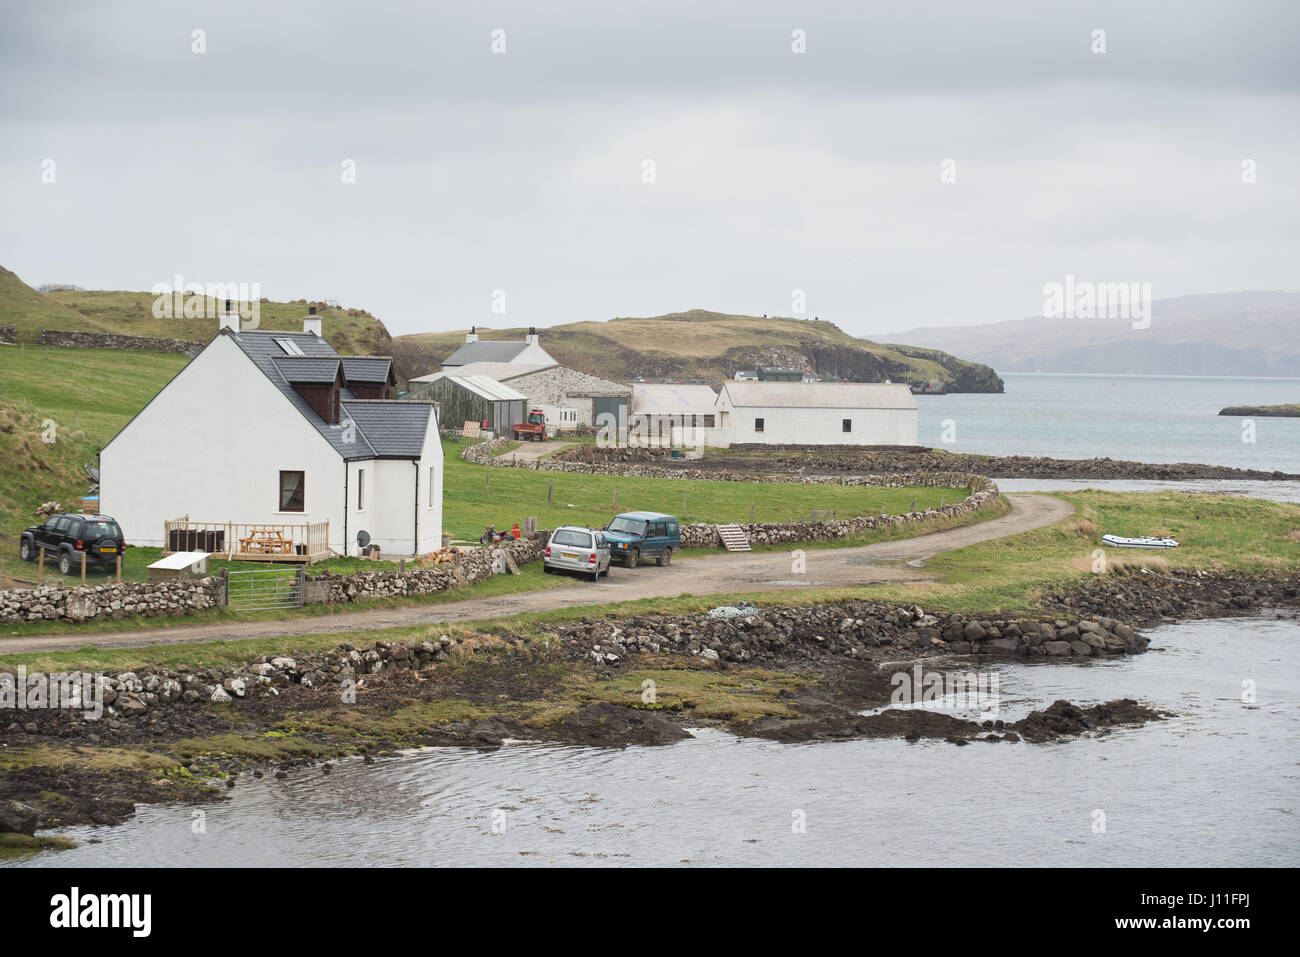 House and farm buildings on the Island of Canna Inner Hebrides Scotland - Stock Image